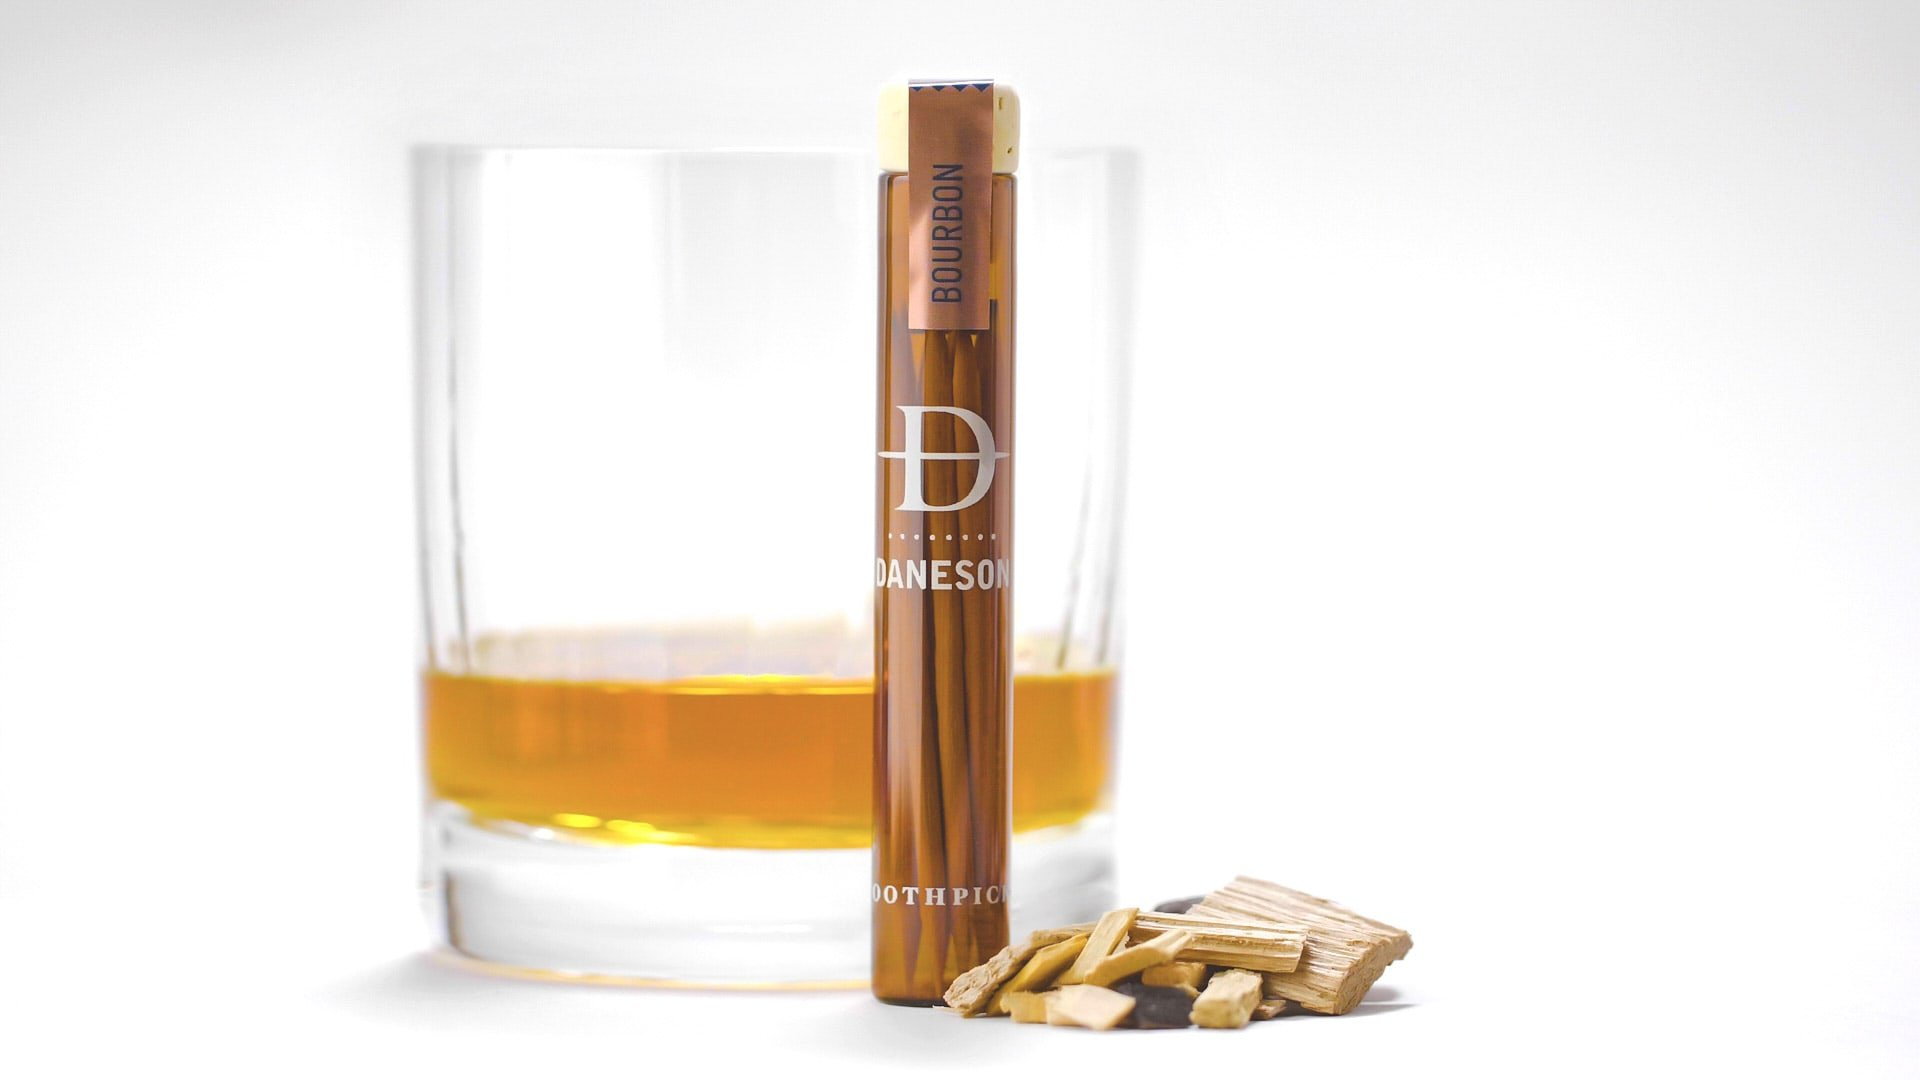 Daneson Bourbon Toothpicks